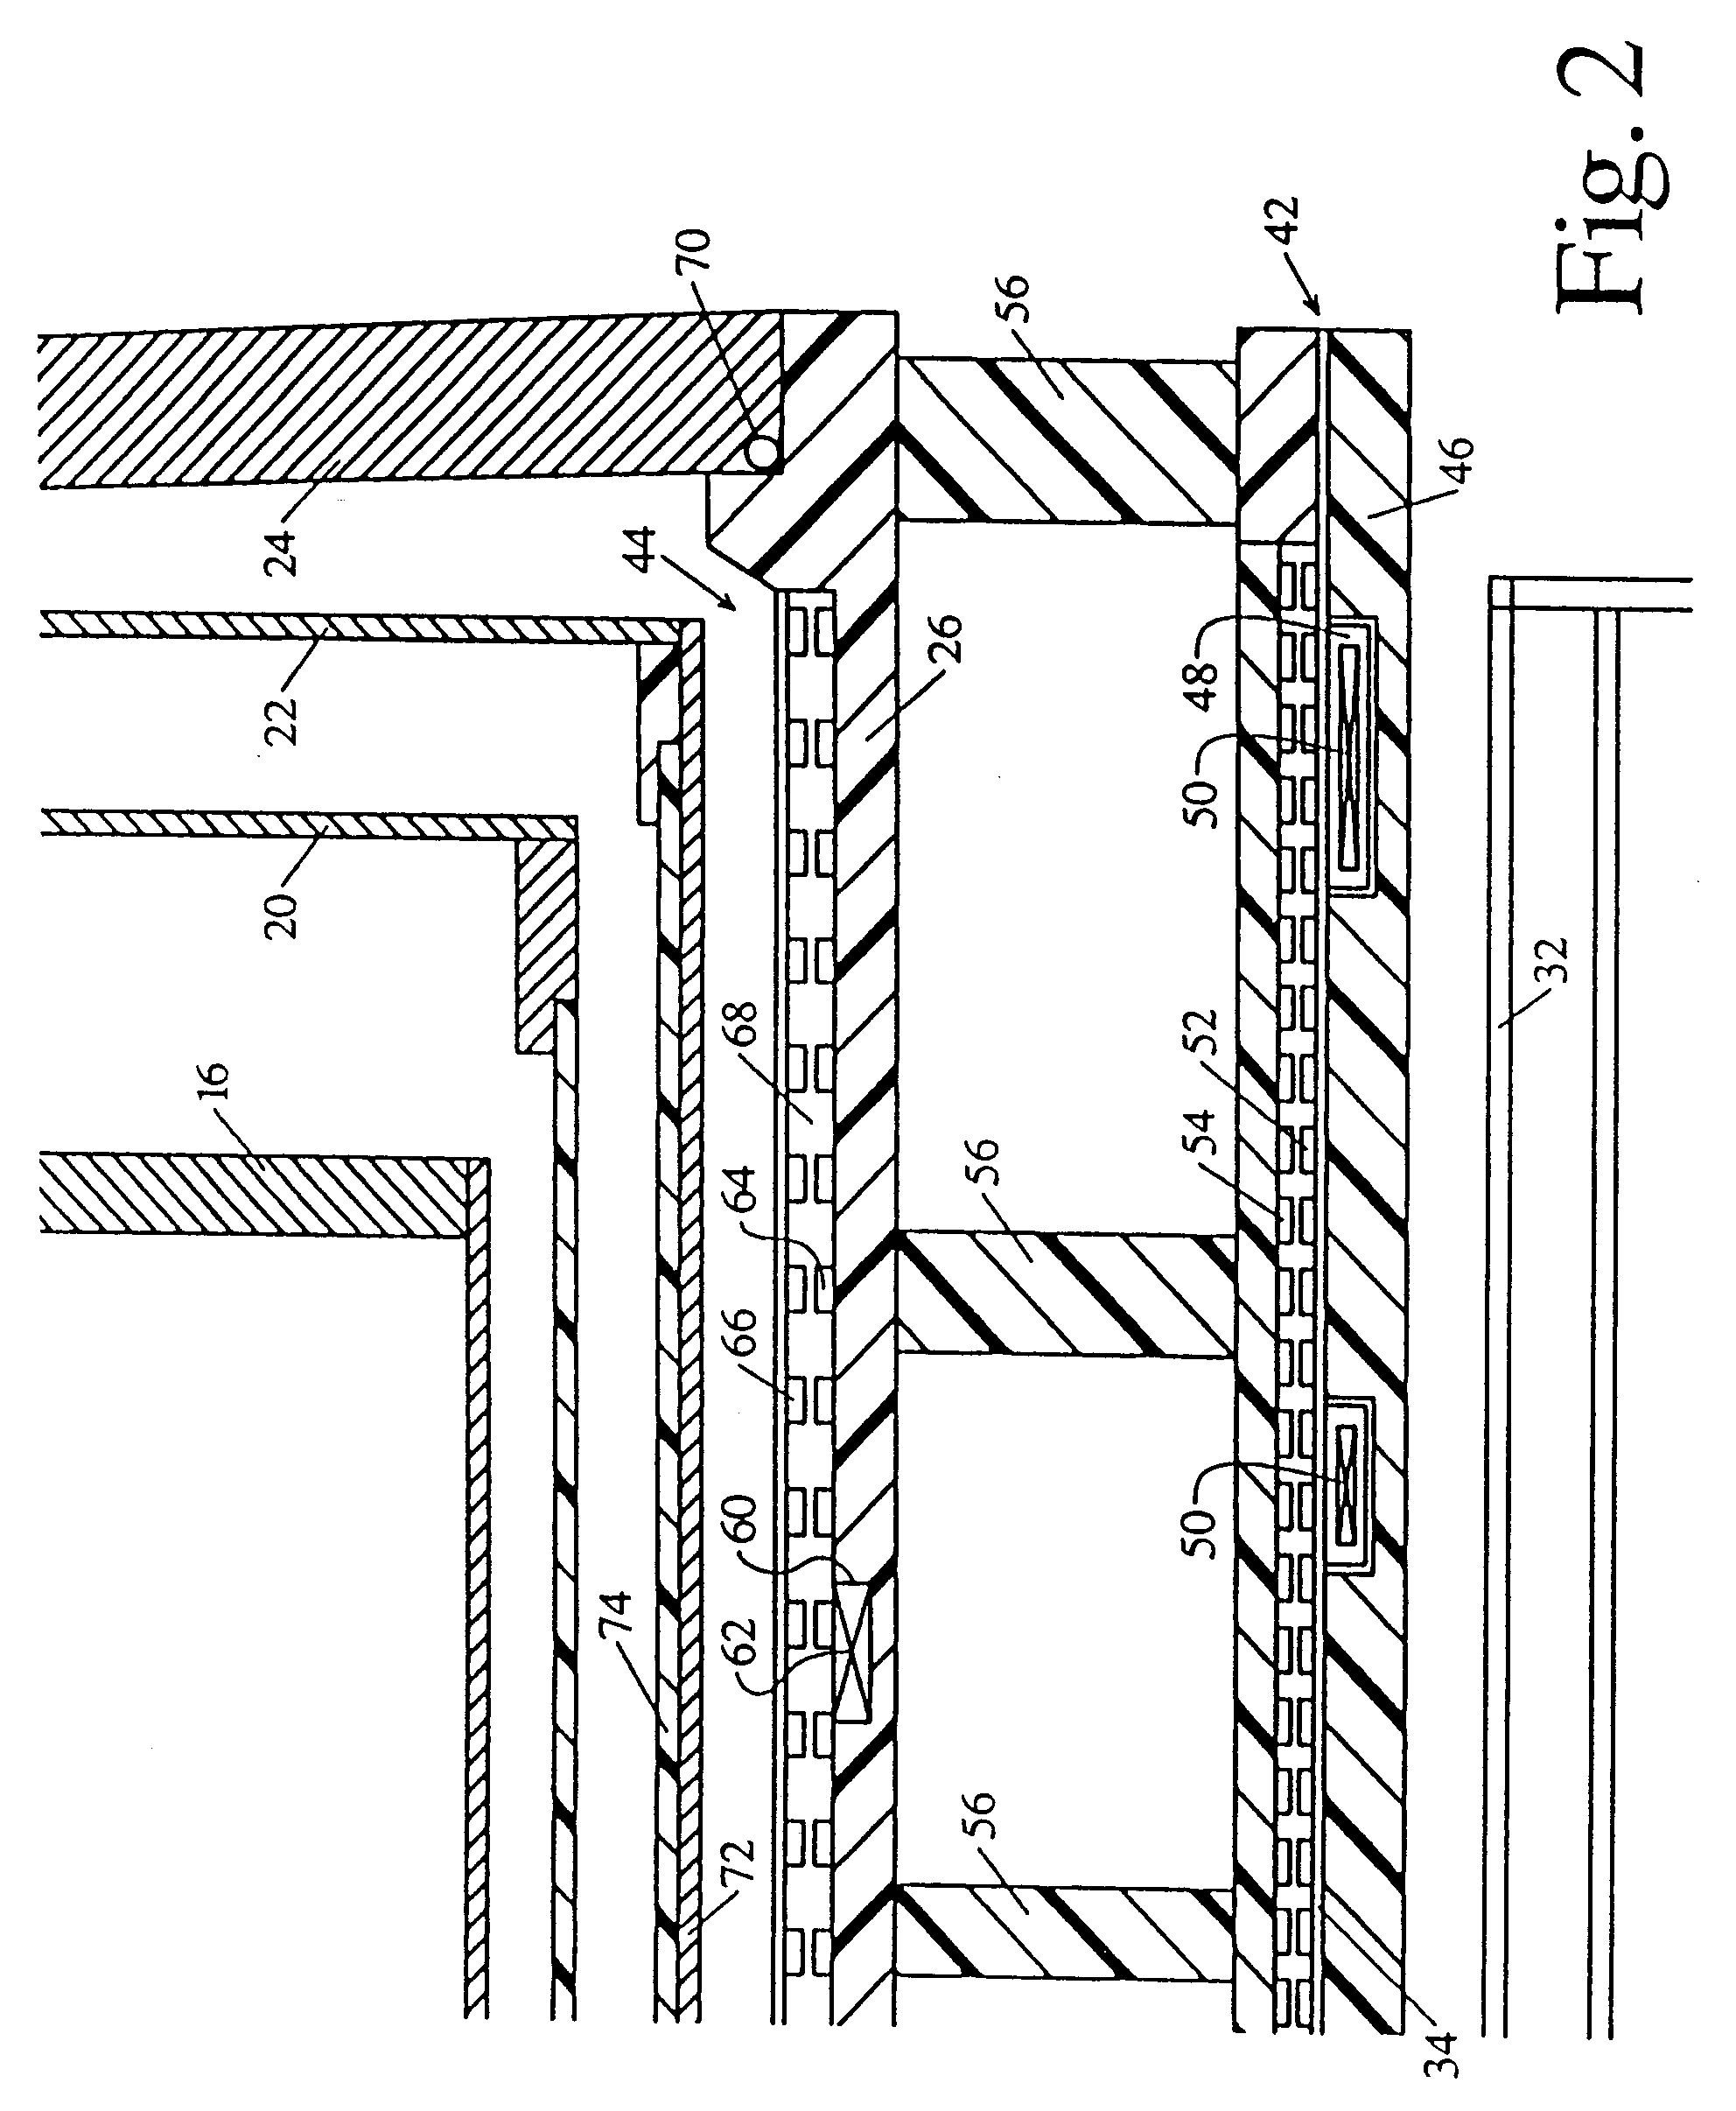 patent ep0629875a1 - magnetic resonance gradient coil and rf screen